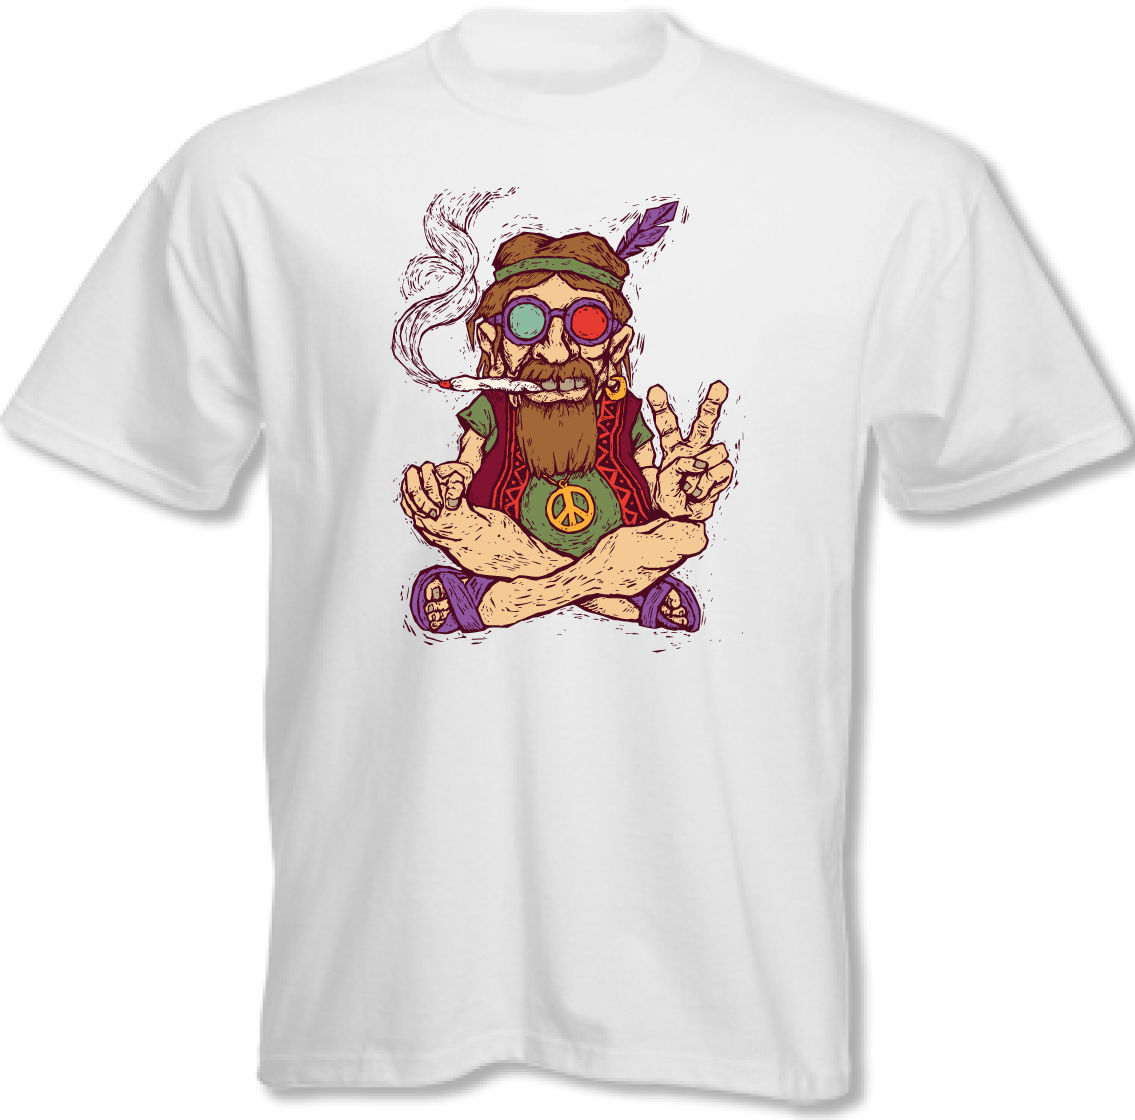 Chilled Out Hippy Smoking A Spliff – Mens Funny T-Shirt Peace Love Weed New Design Cotton Male Tee Shirt Designing Simple Style